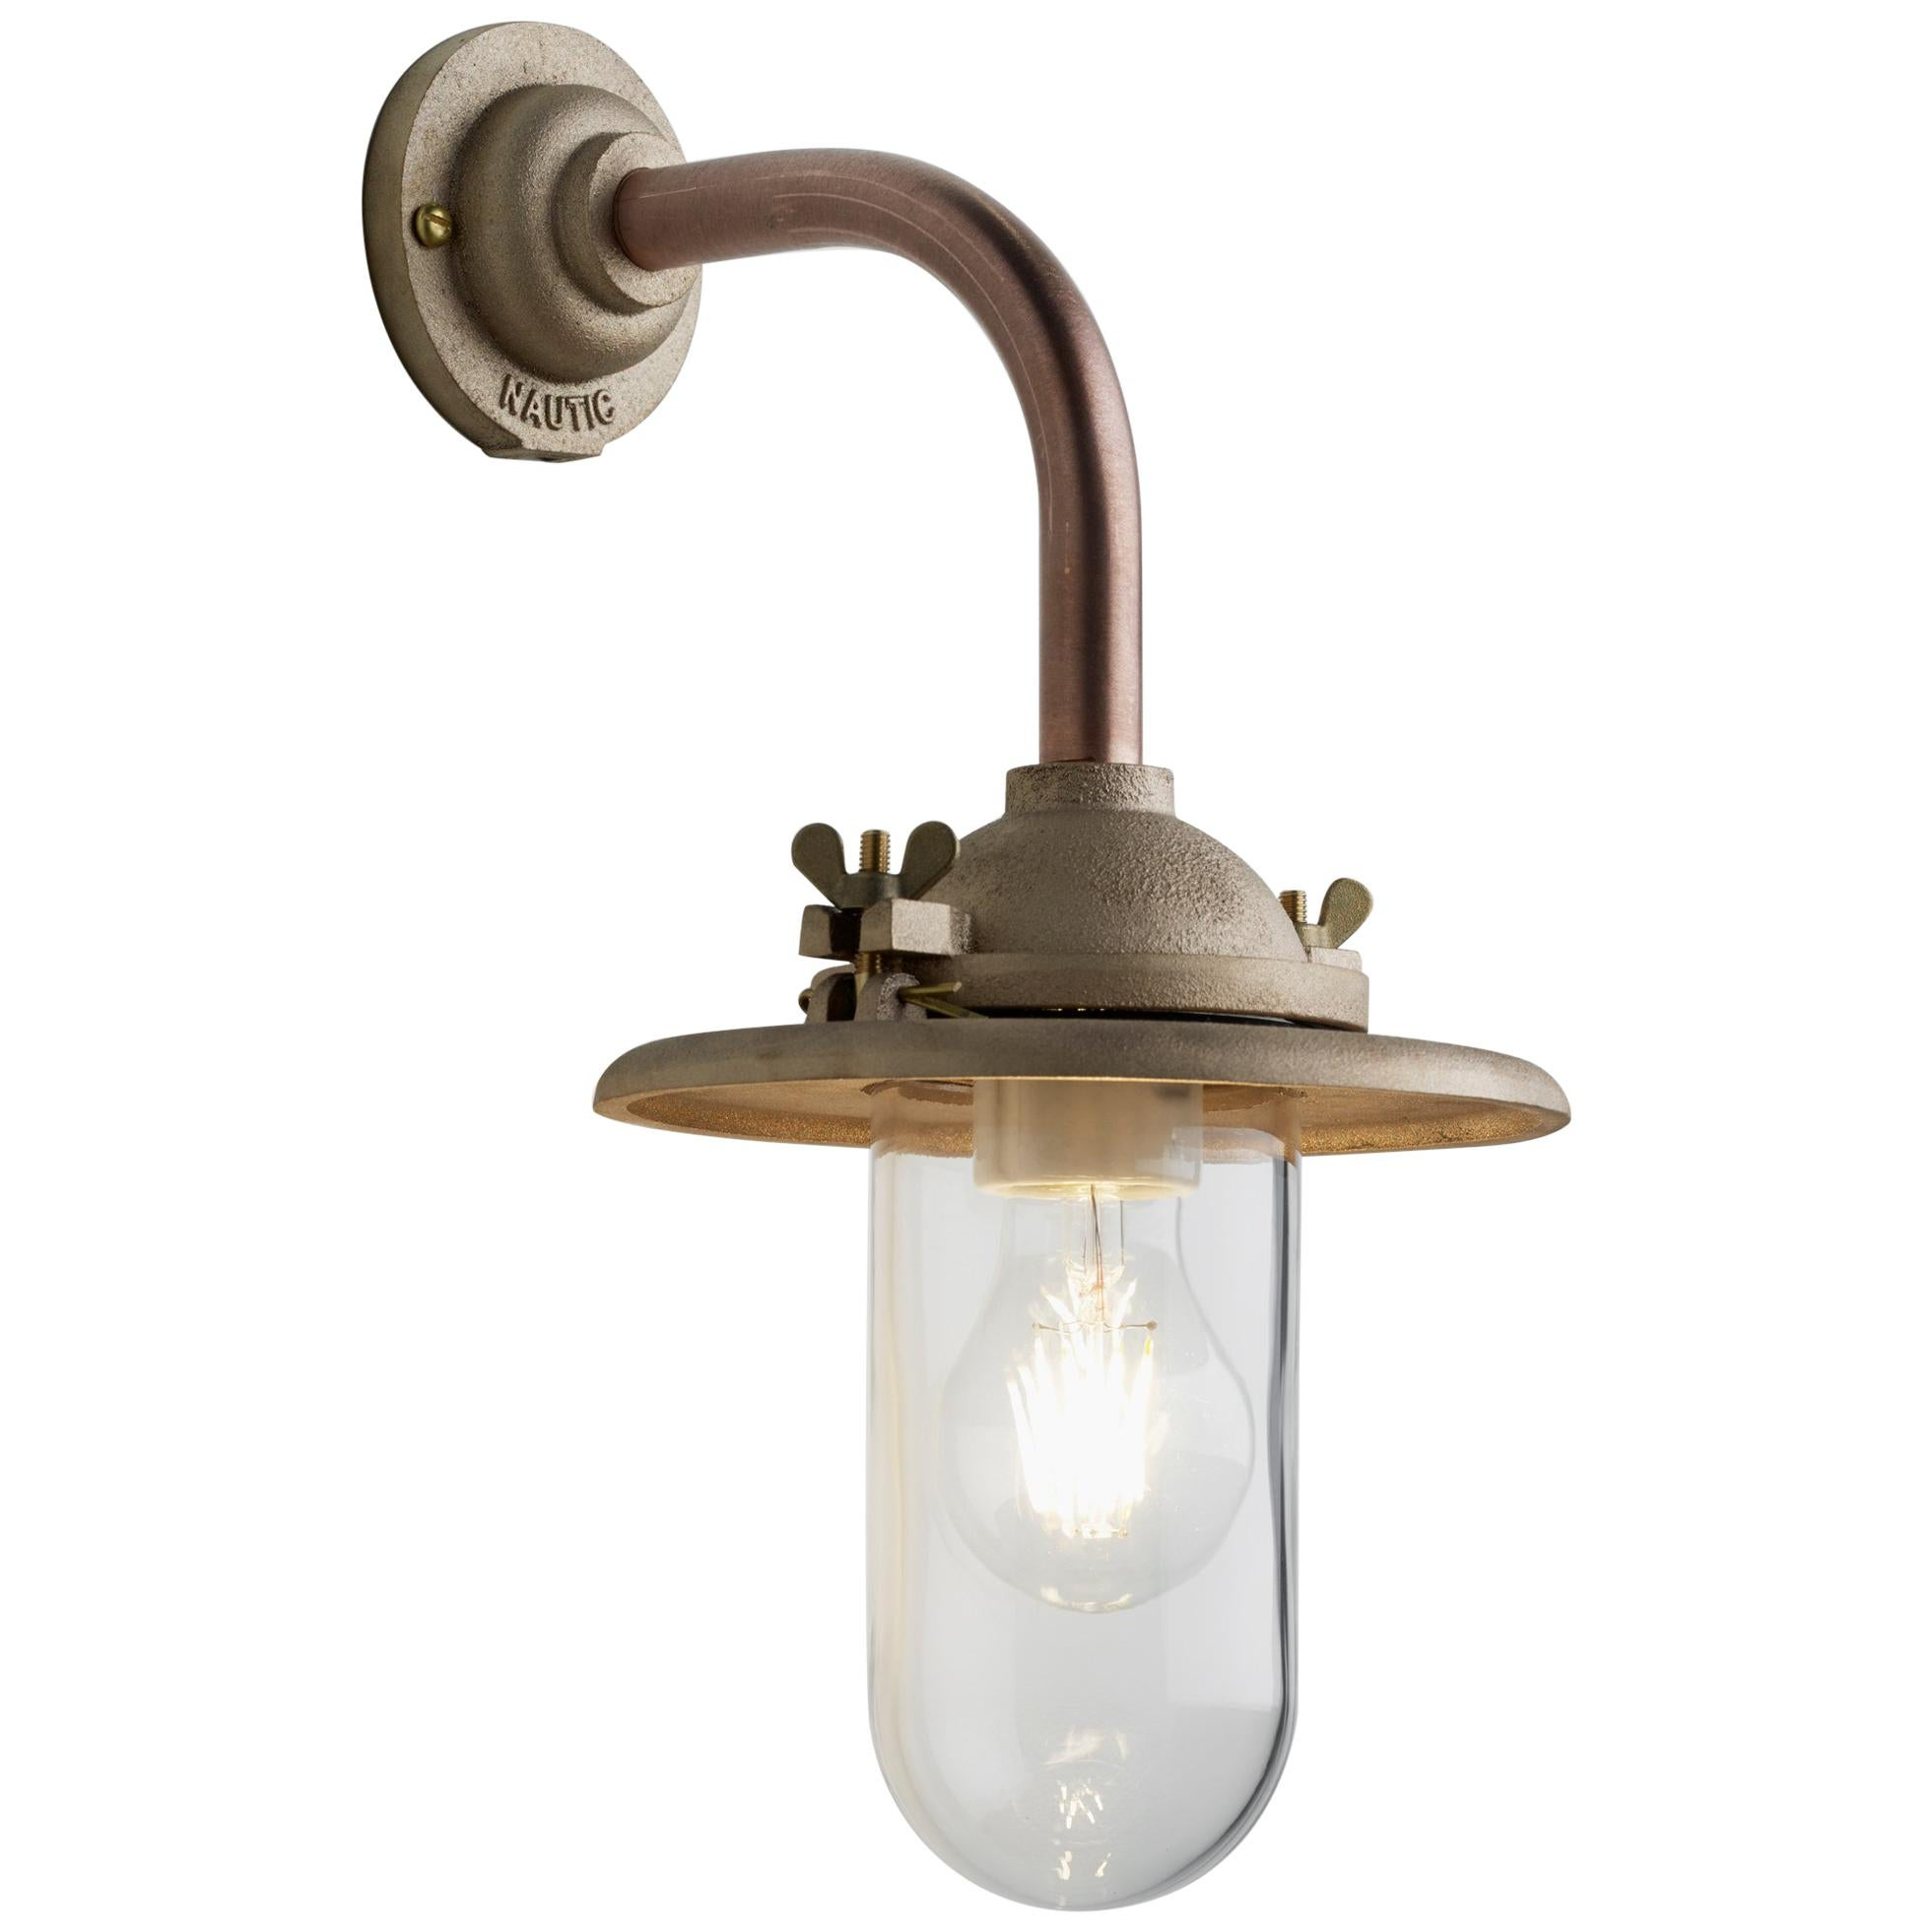 Tekna Butterfly 90° Wall Light with Copper Finish and Clear Glass